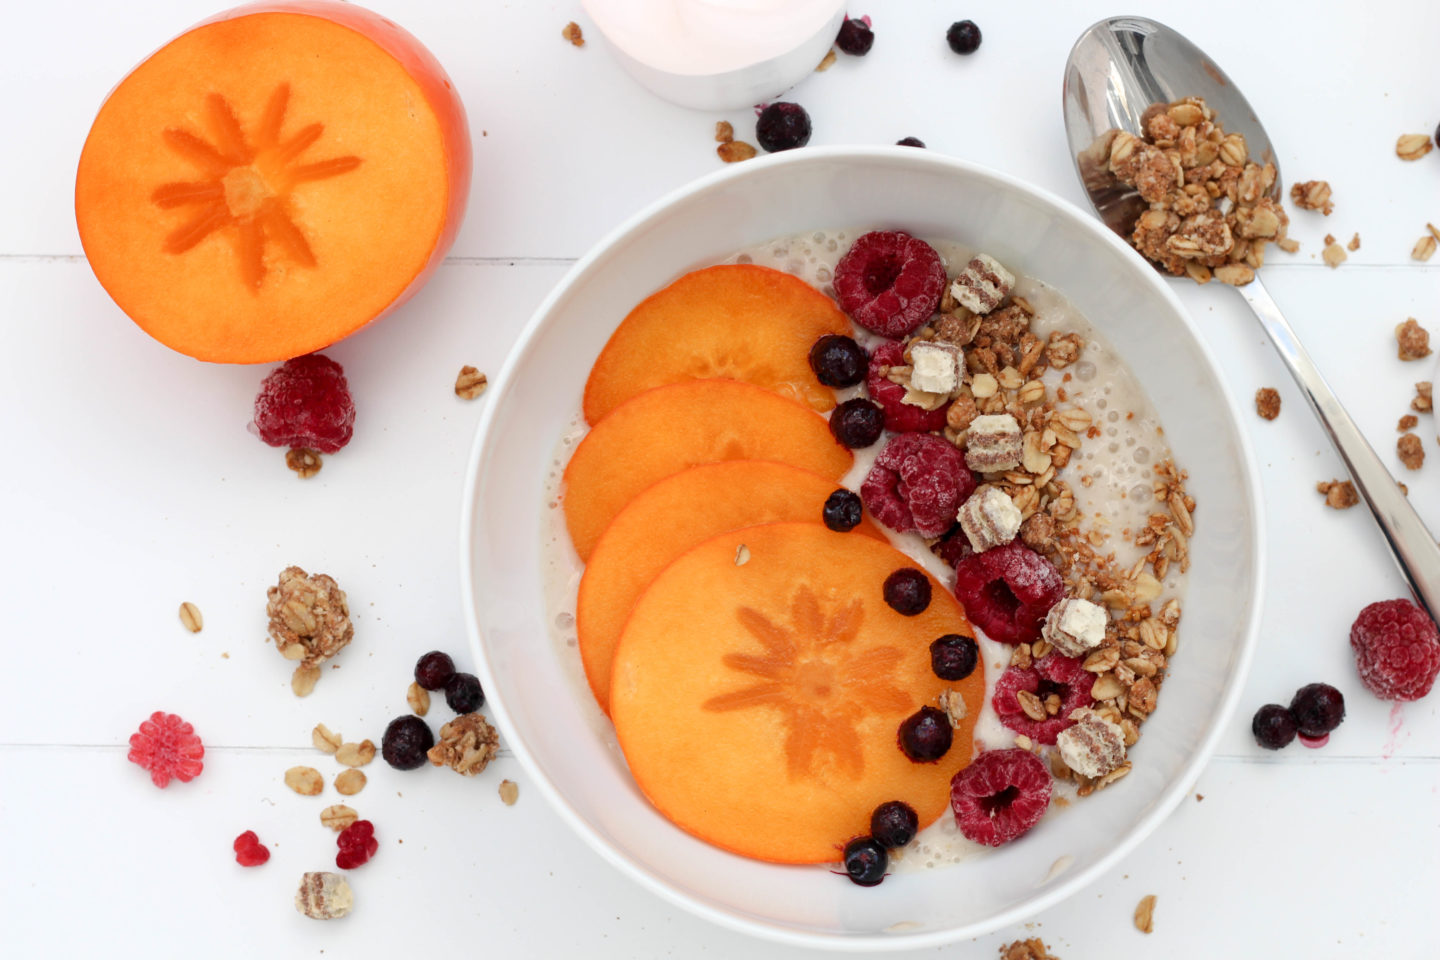 Vegan - Bowl - Smoothie - Sharon - Suoerfood - Austria - Homespa - Obstschüssel